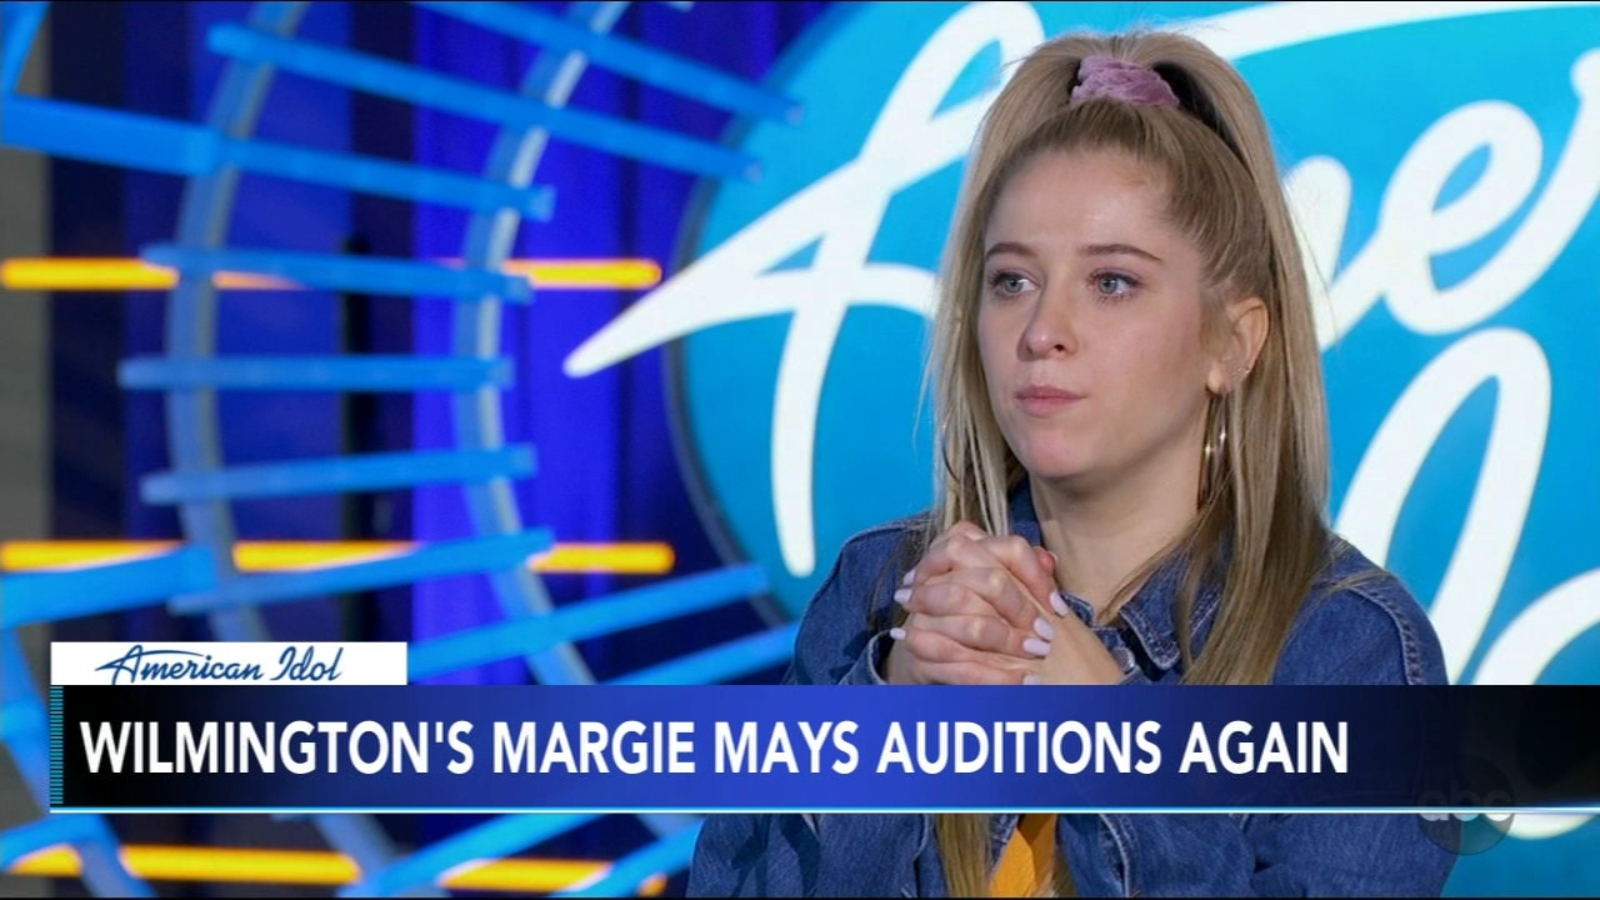 Wilmington's Margie Mays going for golden ticket on American Idol Sunday